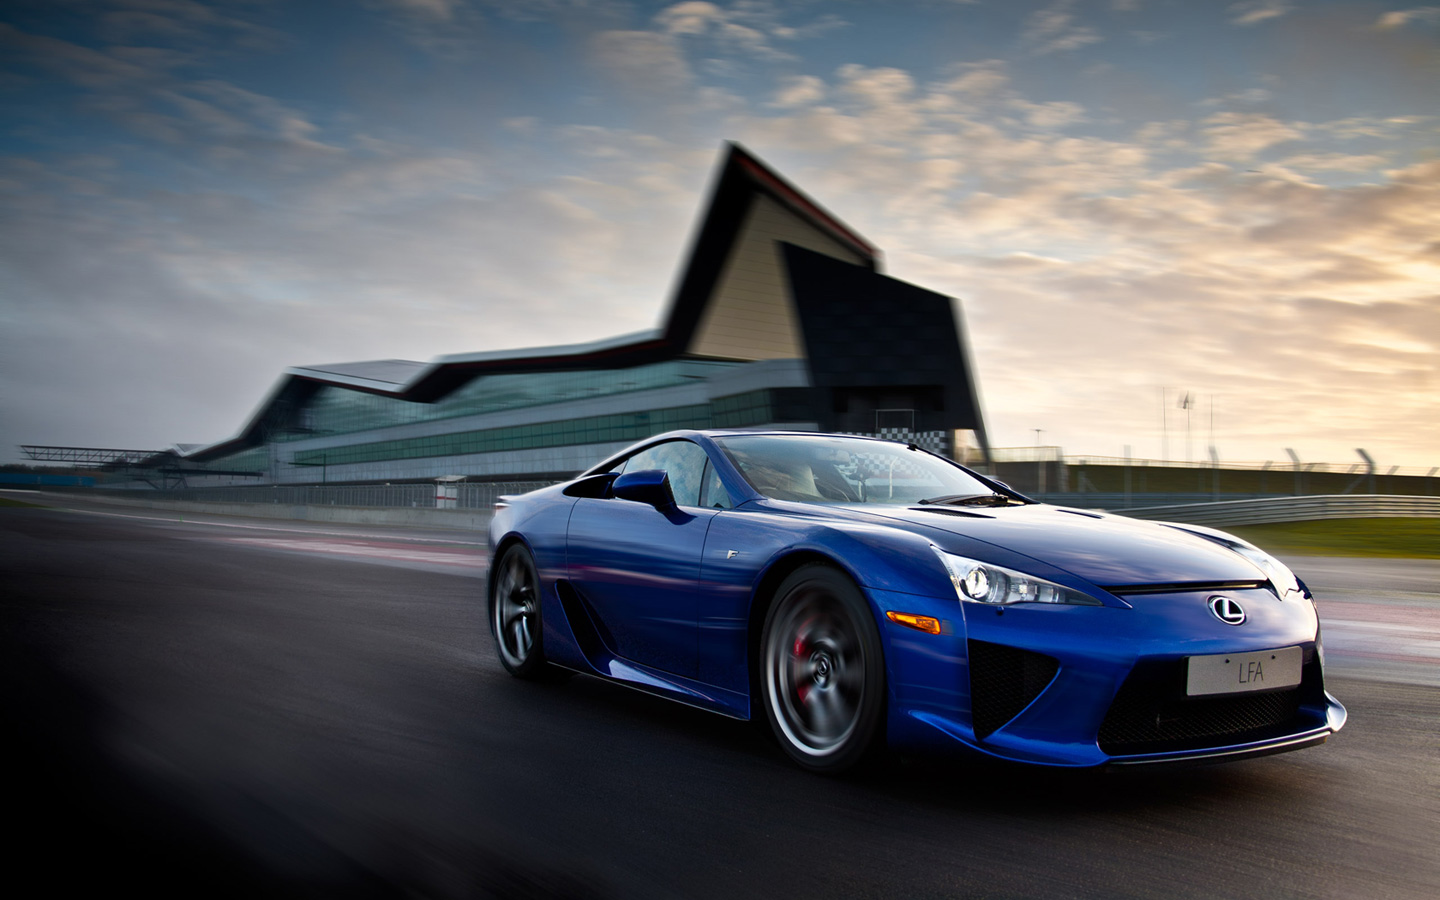 wallpapers lexus lfa - photo #16